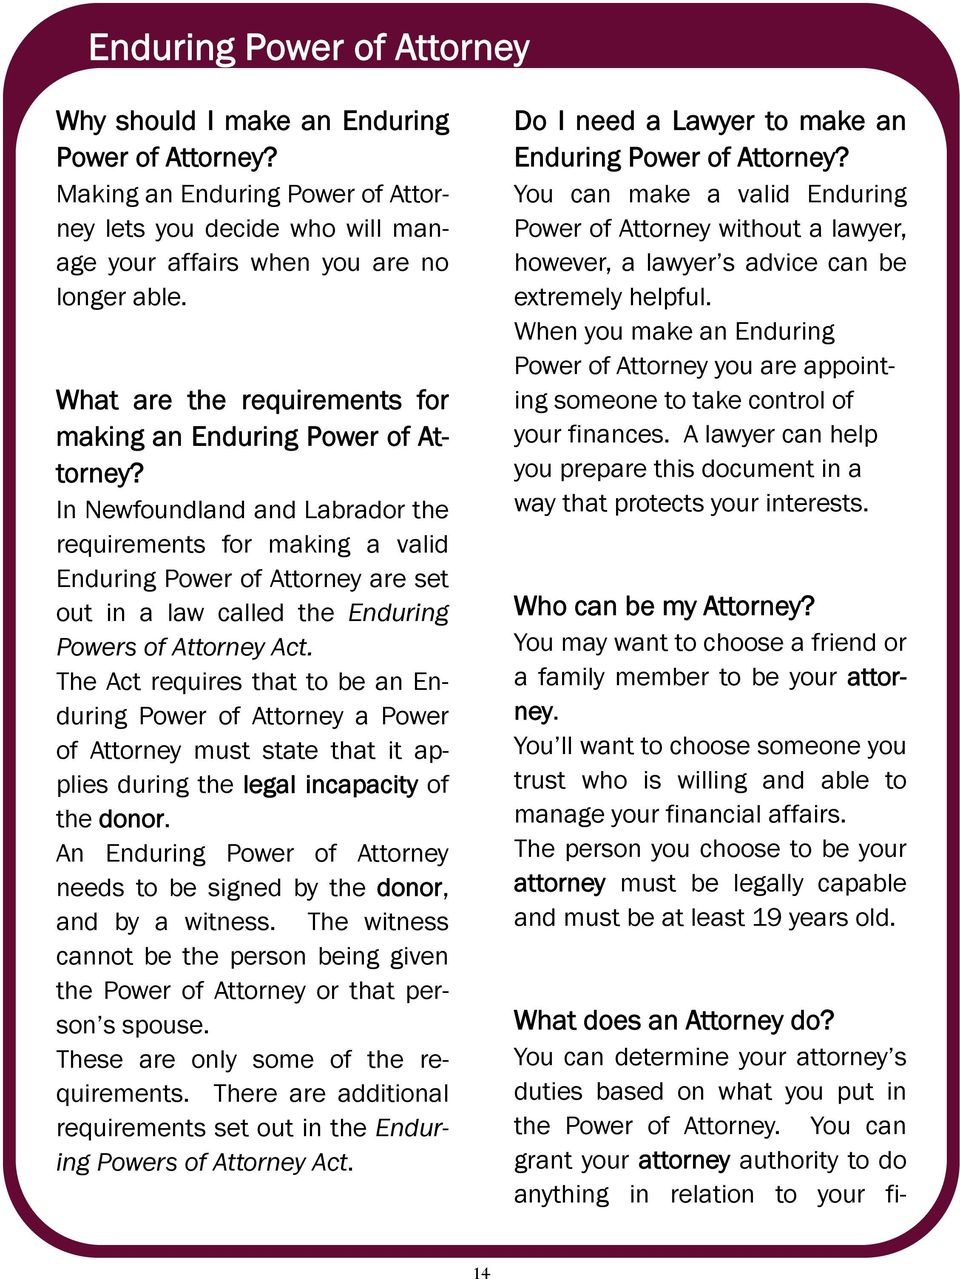 In Newfoundland and Labrador the requirements for making a valid Enduring Power of Attorney are set out in a law called the Enduring Powers of Attorney Act.